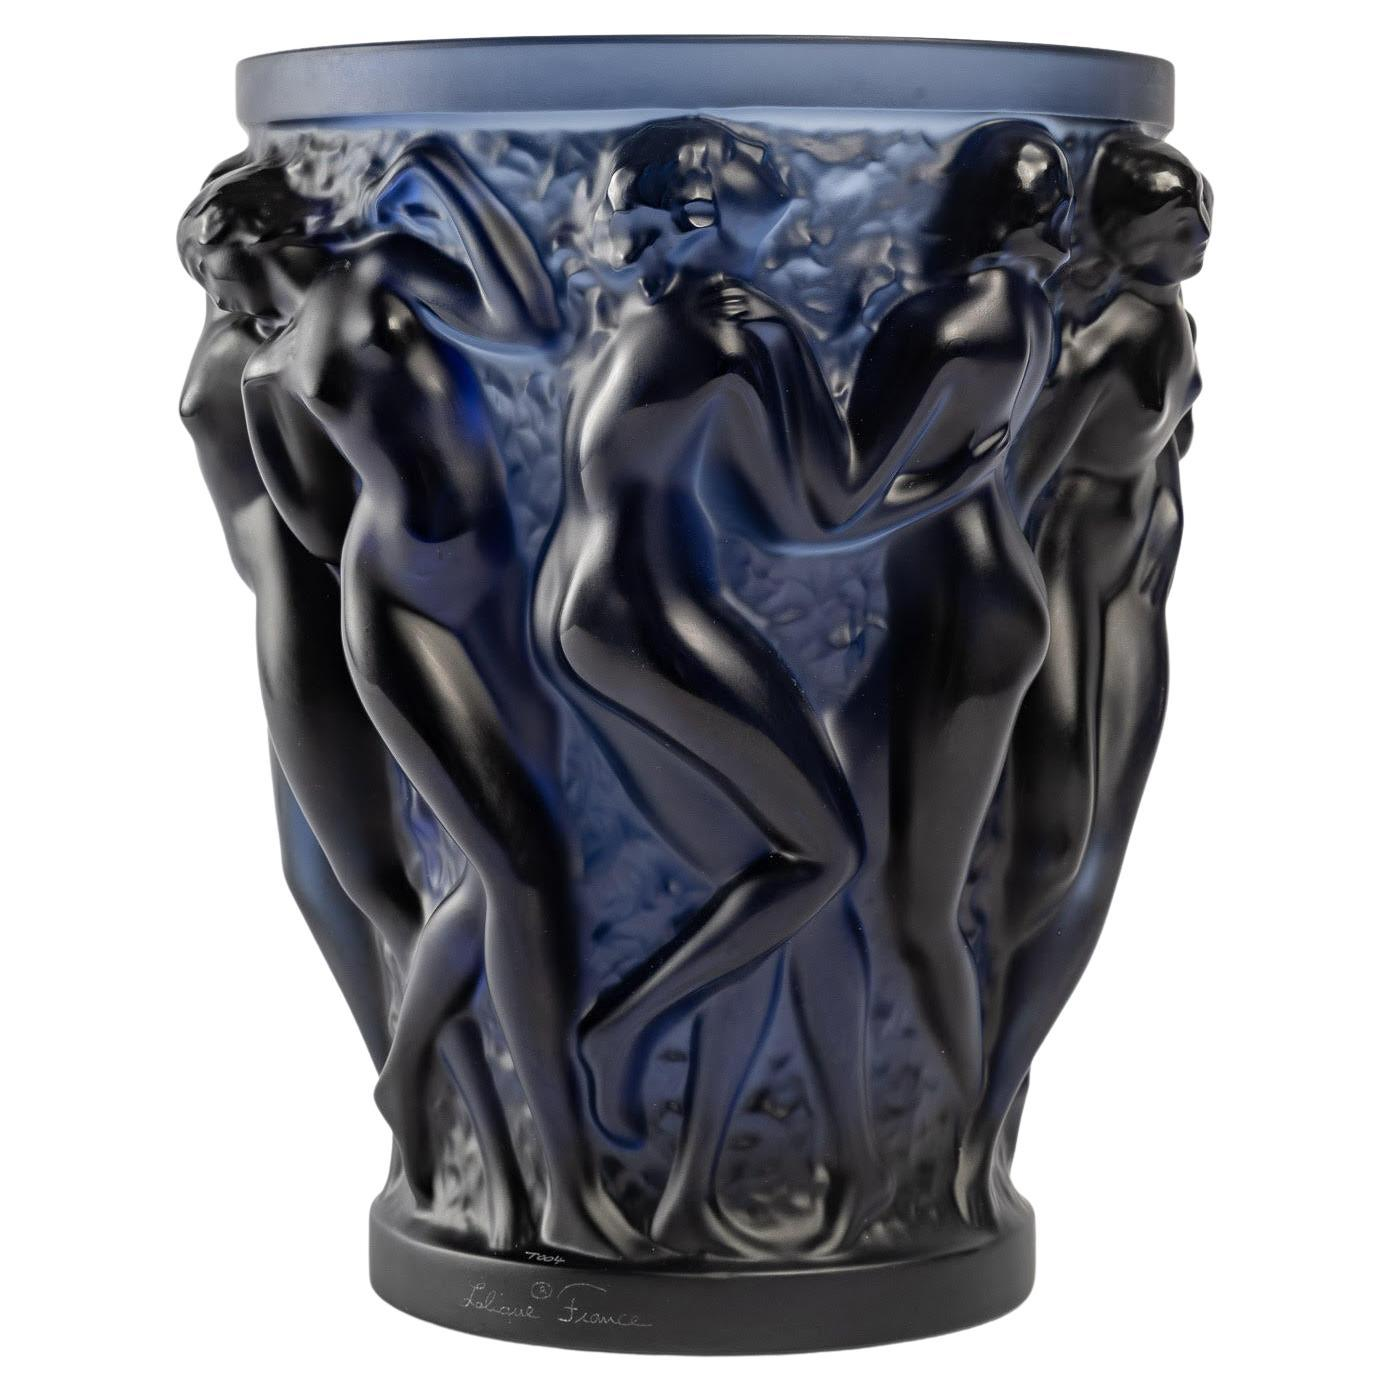 Lalique Vases and Vessels